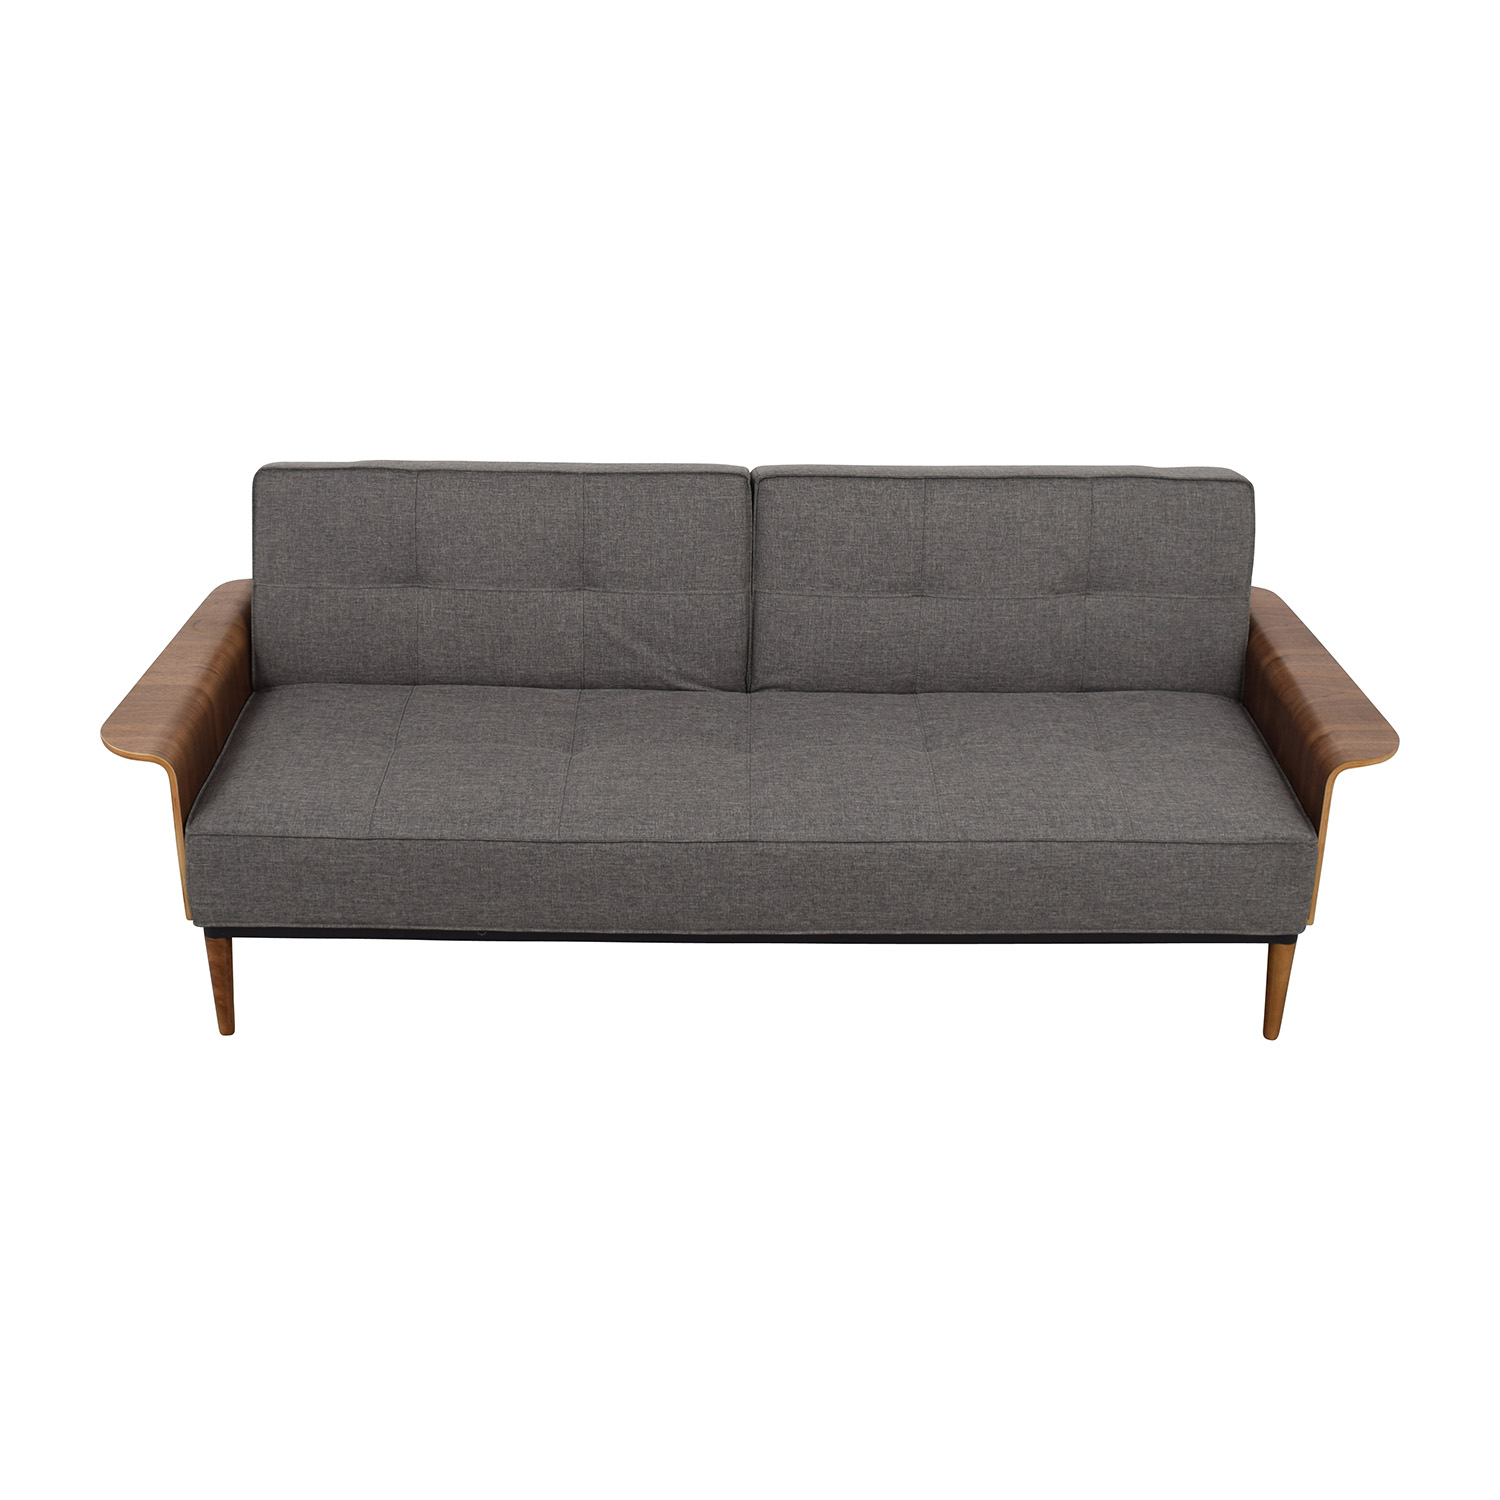 Inmod Inmod Bjorg Tufted Dark Grey Sofabed nyc